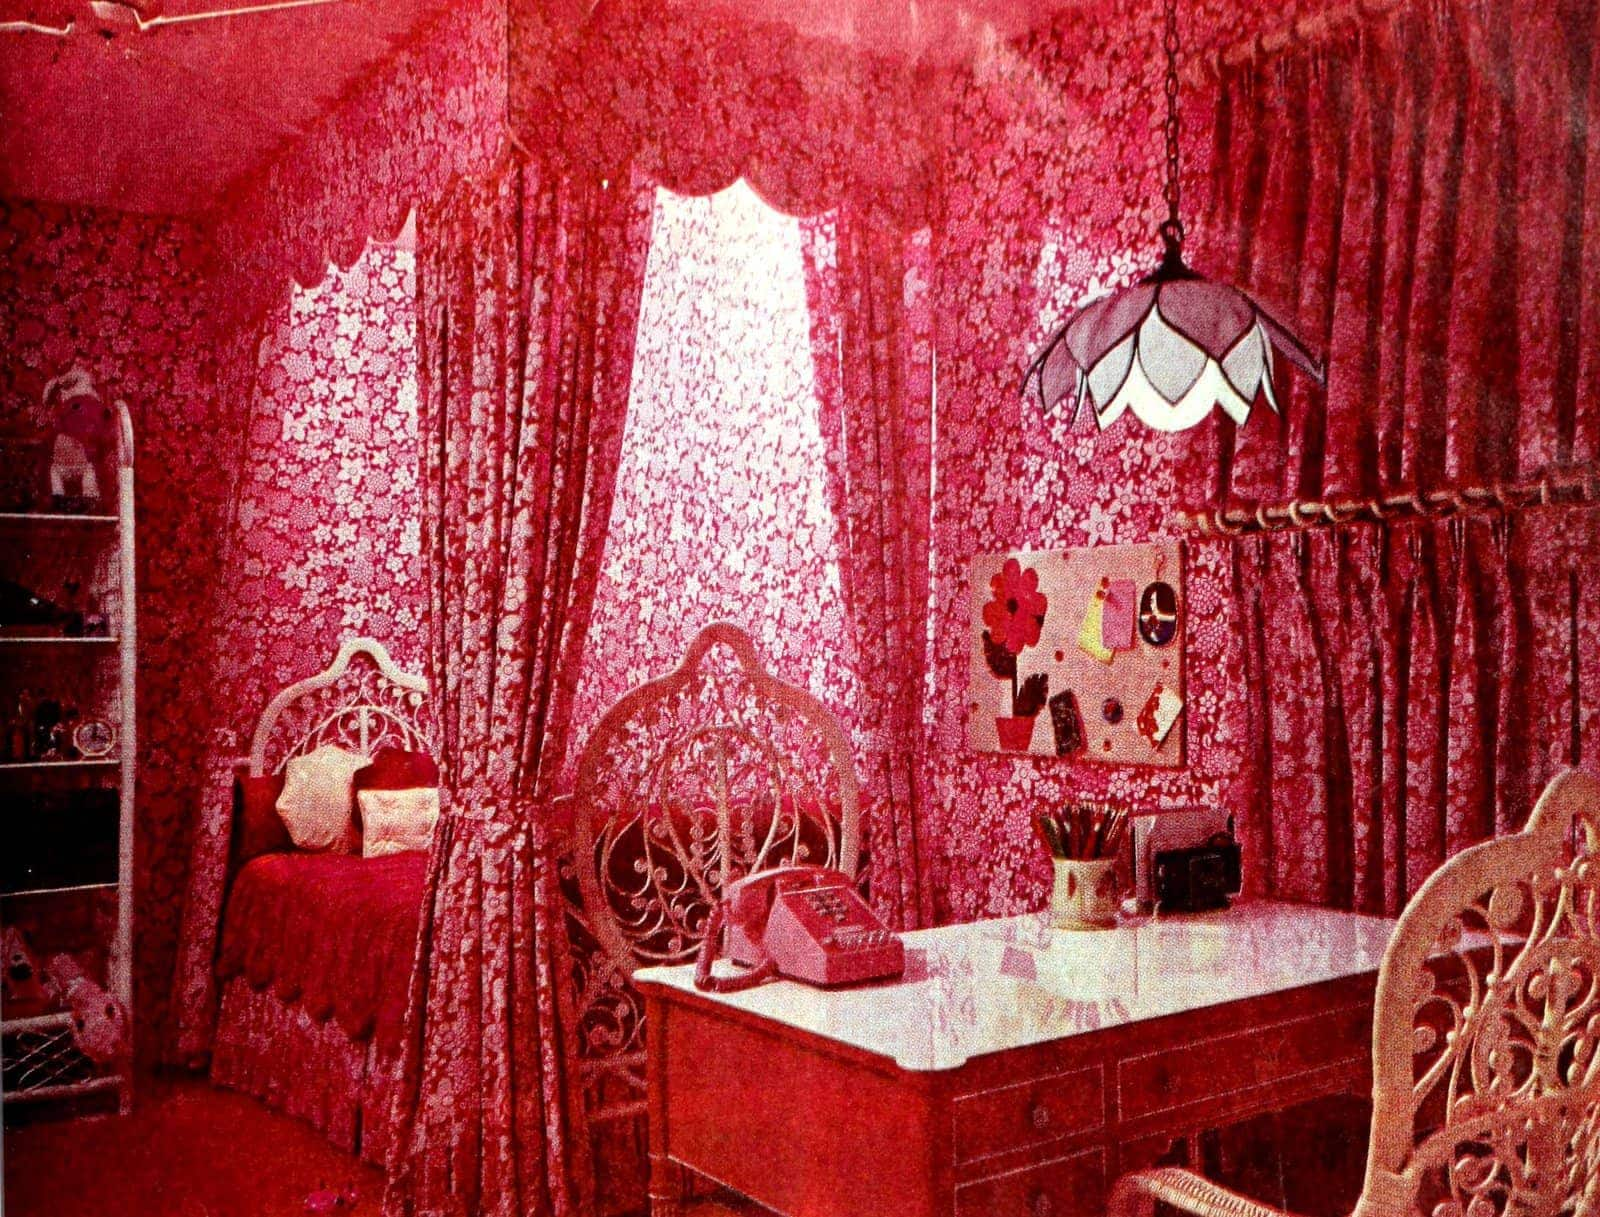 Pink retro bedroom with floral canopy bed and curtains (1971)